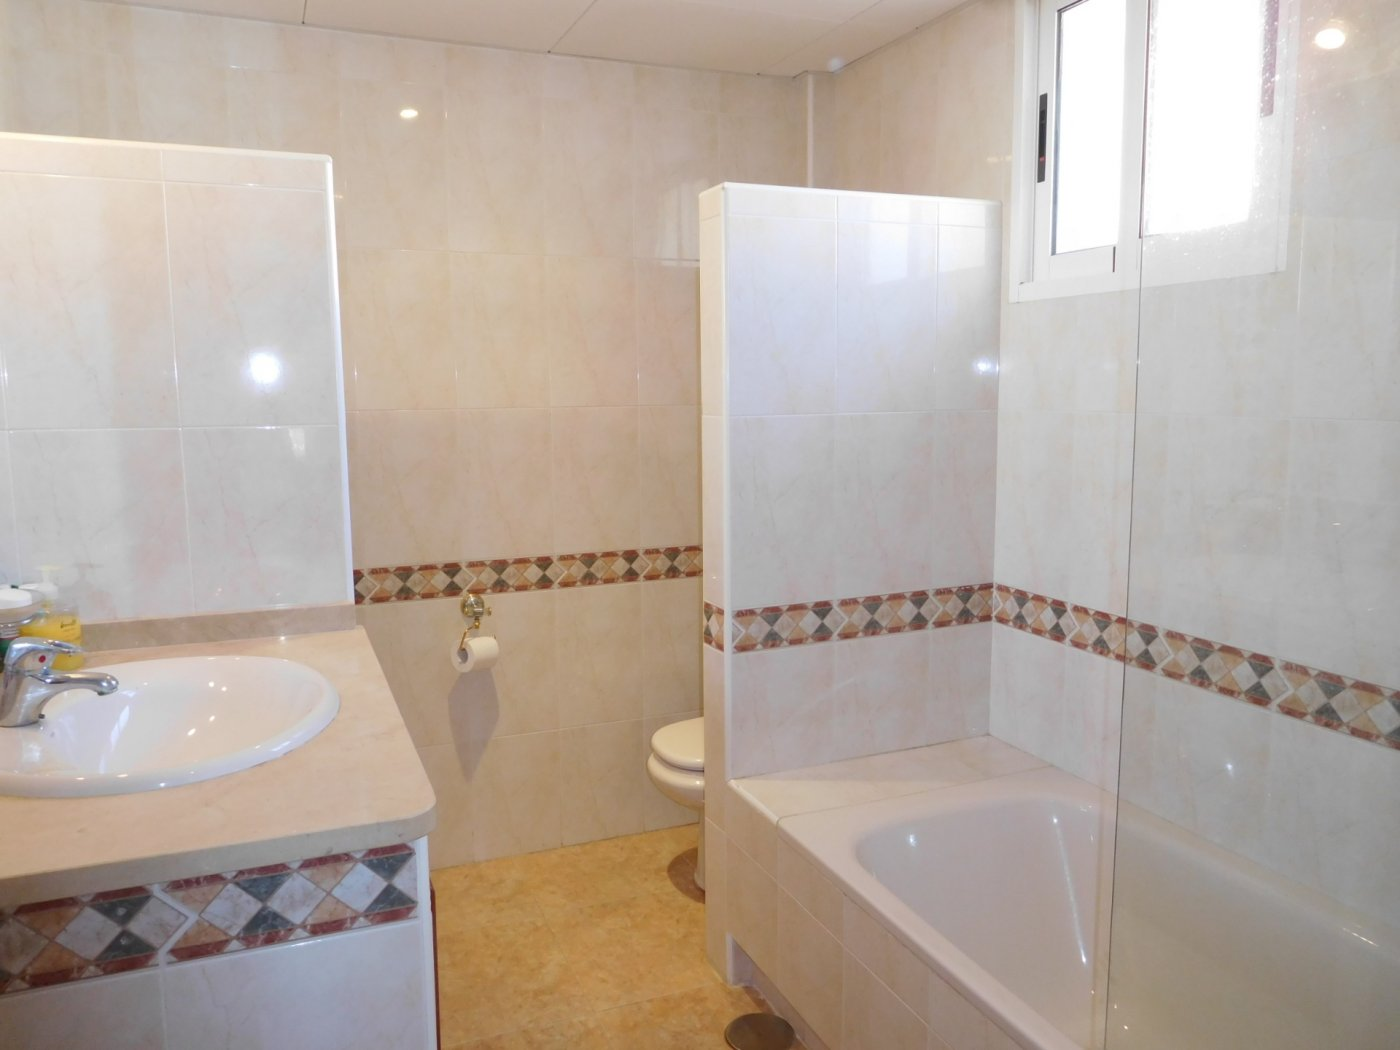 Gallery Image 27 of Casa For rent in Los Naranjos, La Manga Club With Pool